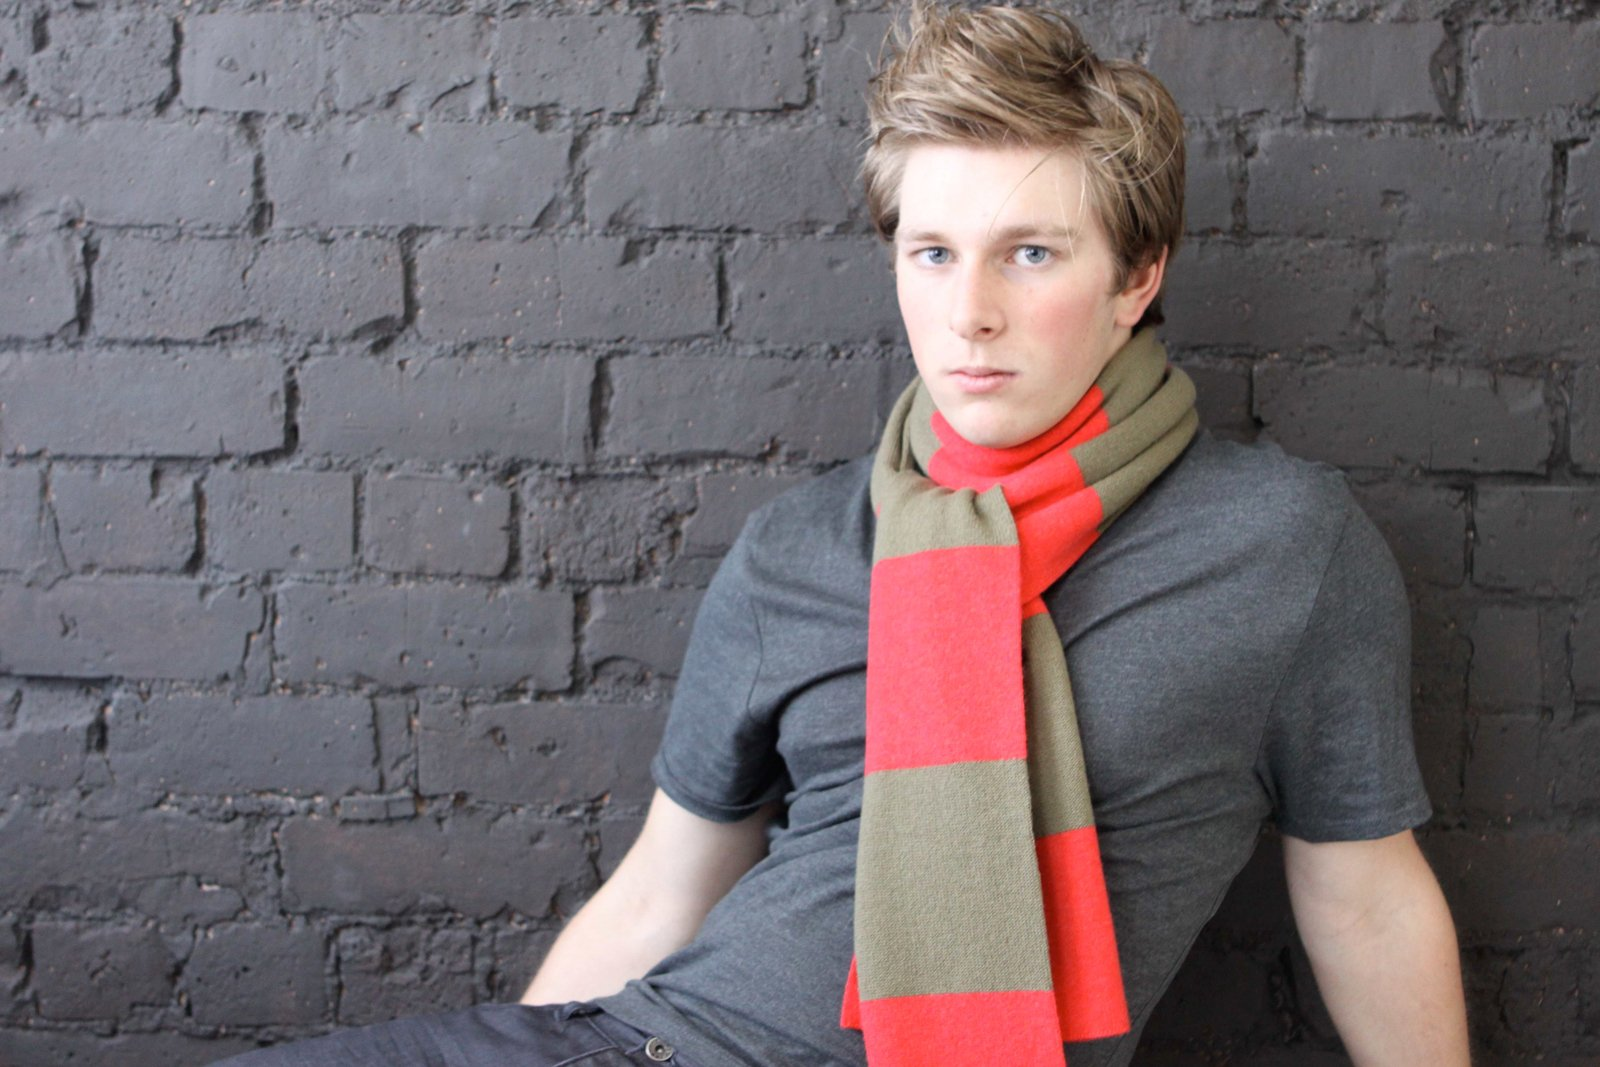 Mens Striped 100% Cashmere Scarf - Light Natural / Light Gray - handmade in Scotland by Love Cashmere by Love Cashmere (Image #3)